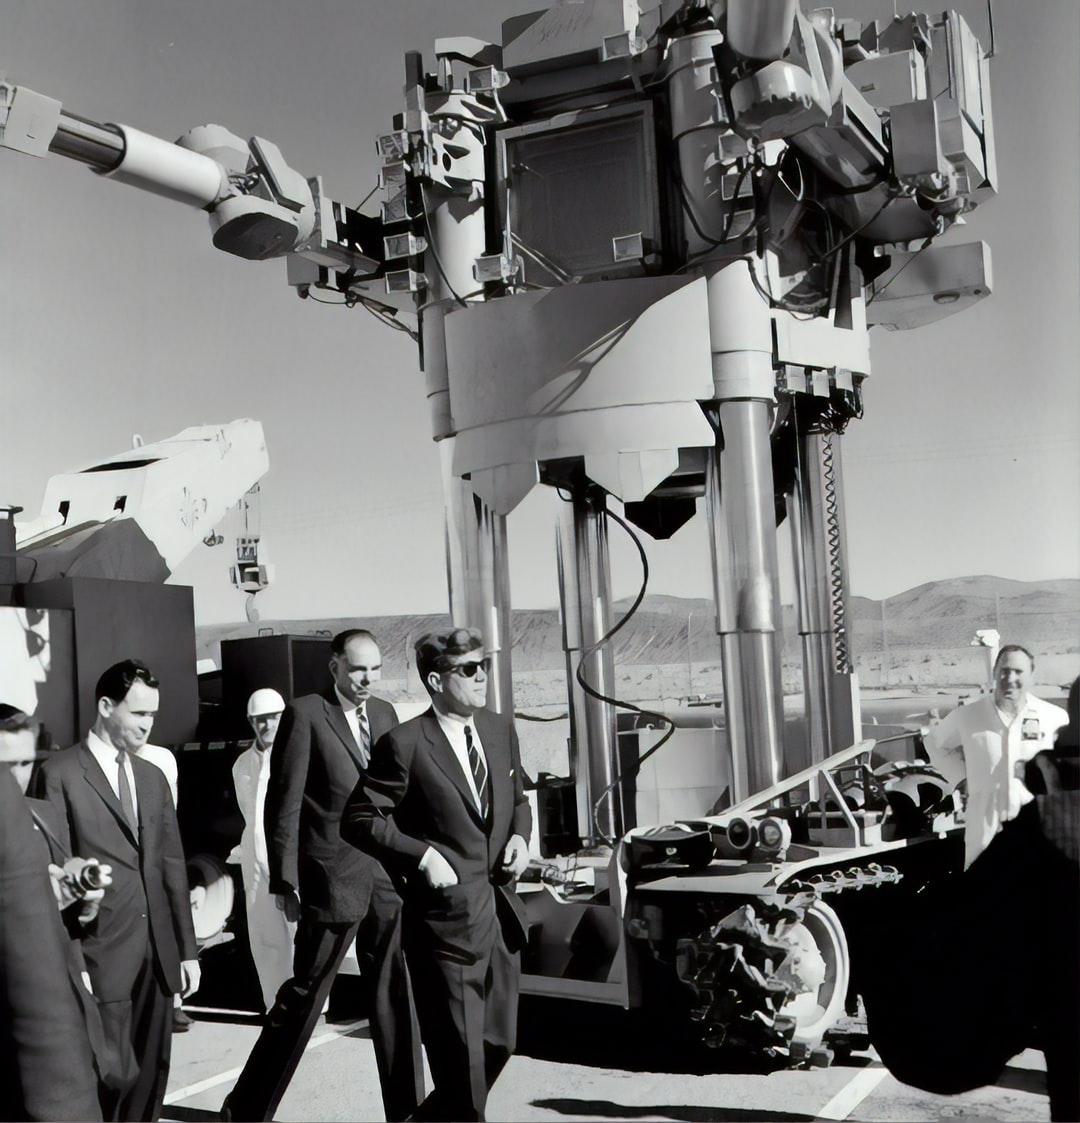 PRESIDENT JOHN F. KENNEDY VISITS AREA 400 MAD BUILDING AT LOS ALAMOS IN 1962.